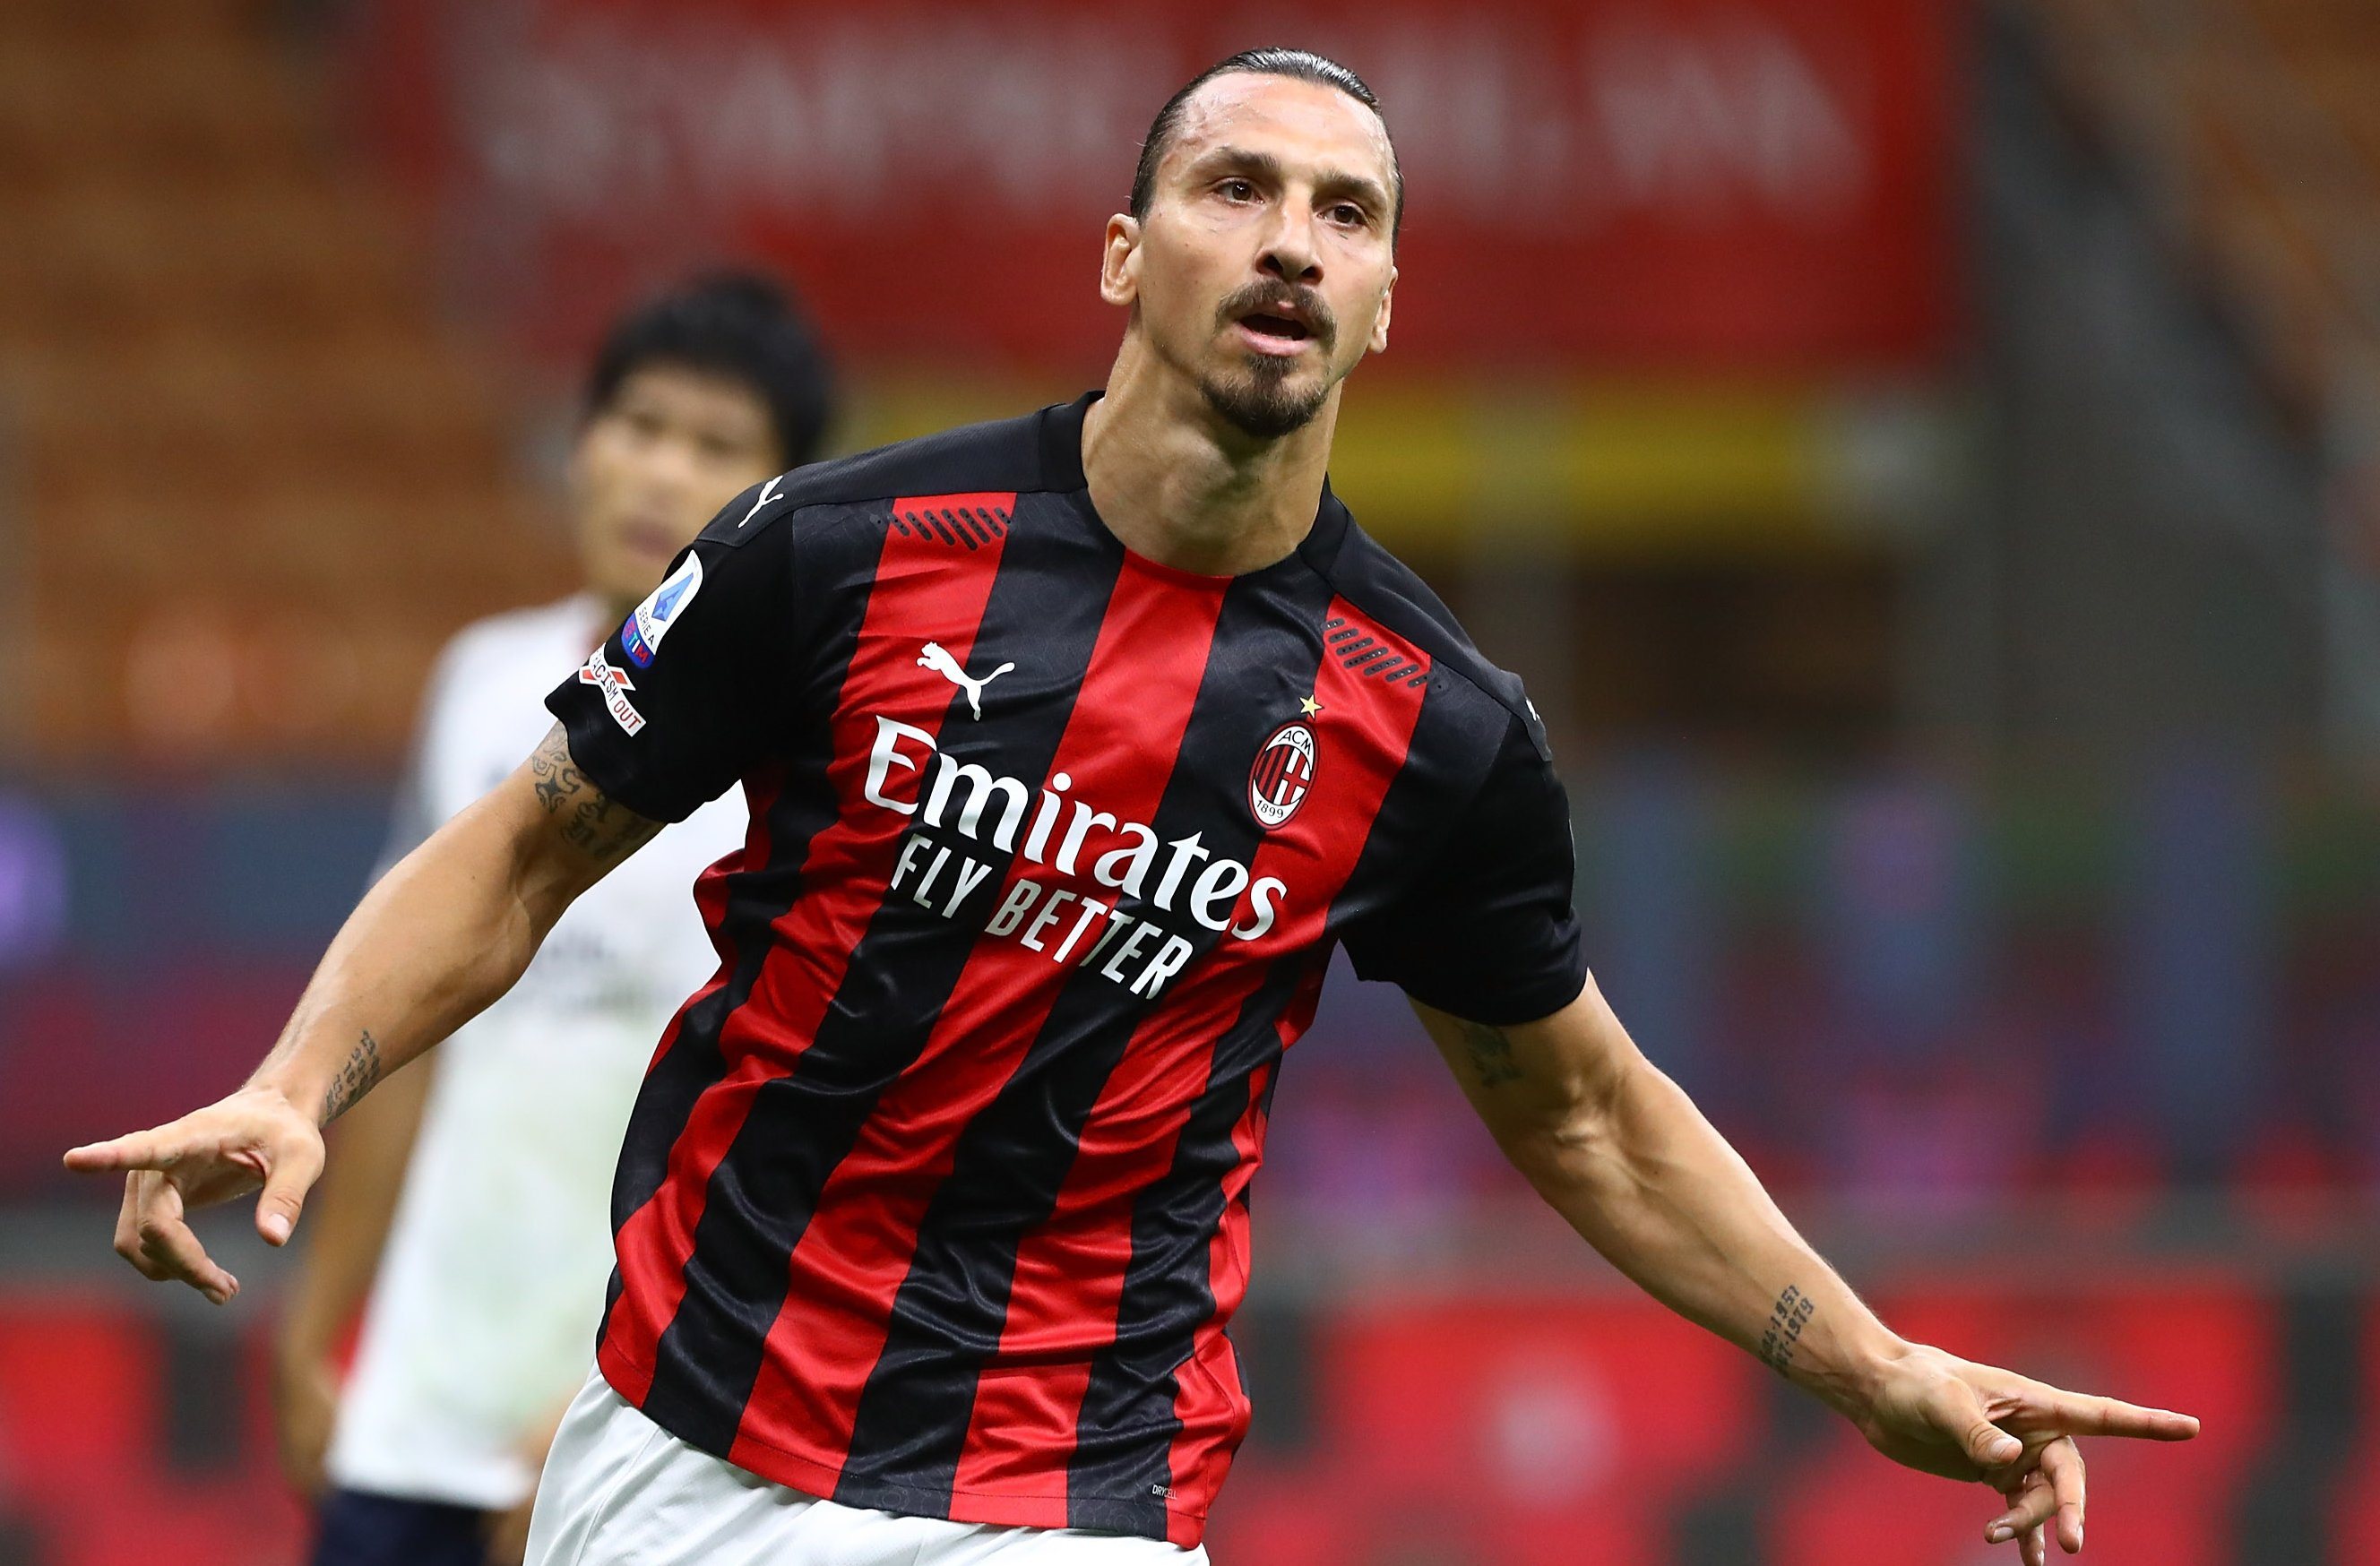 Zlatan Ibrahimovic hints at AC Milan move ahead of January